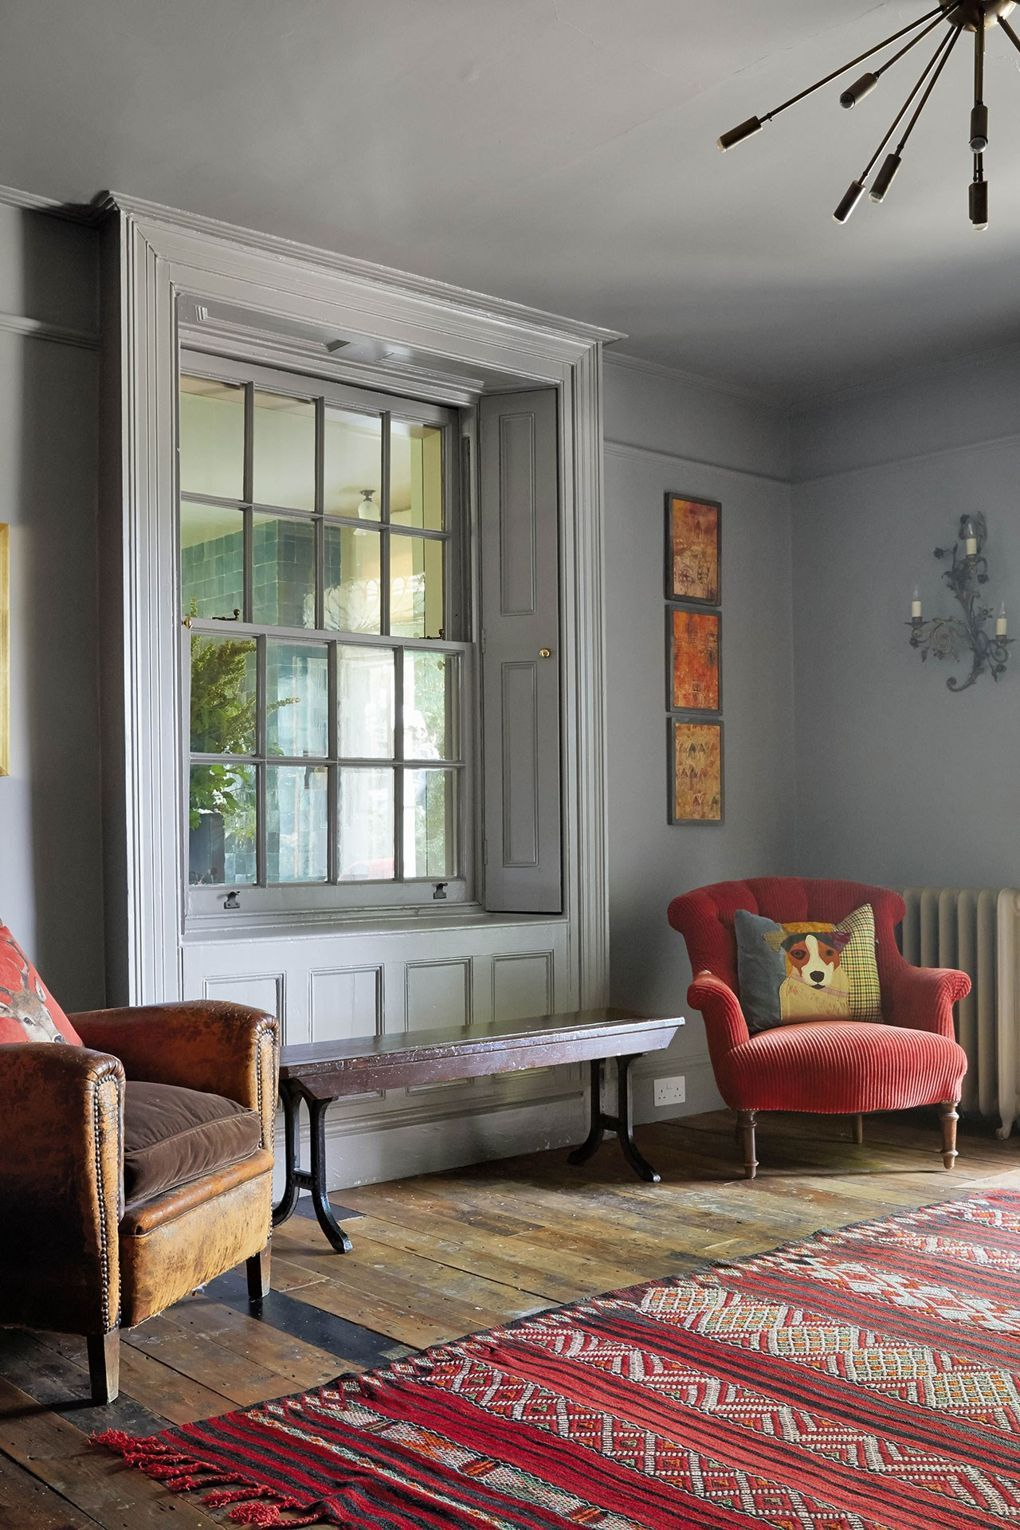 A farmhouse restored with soul by Maria Speake of ...